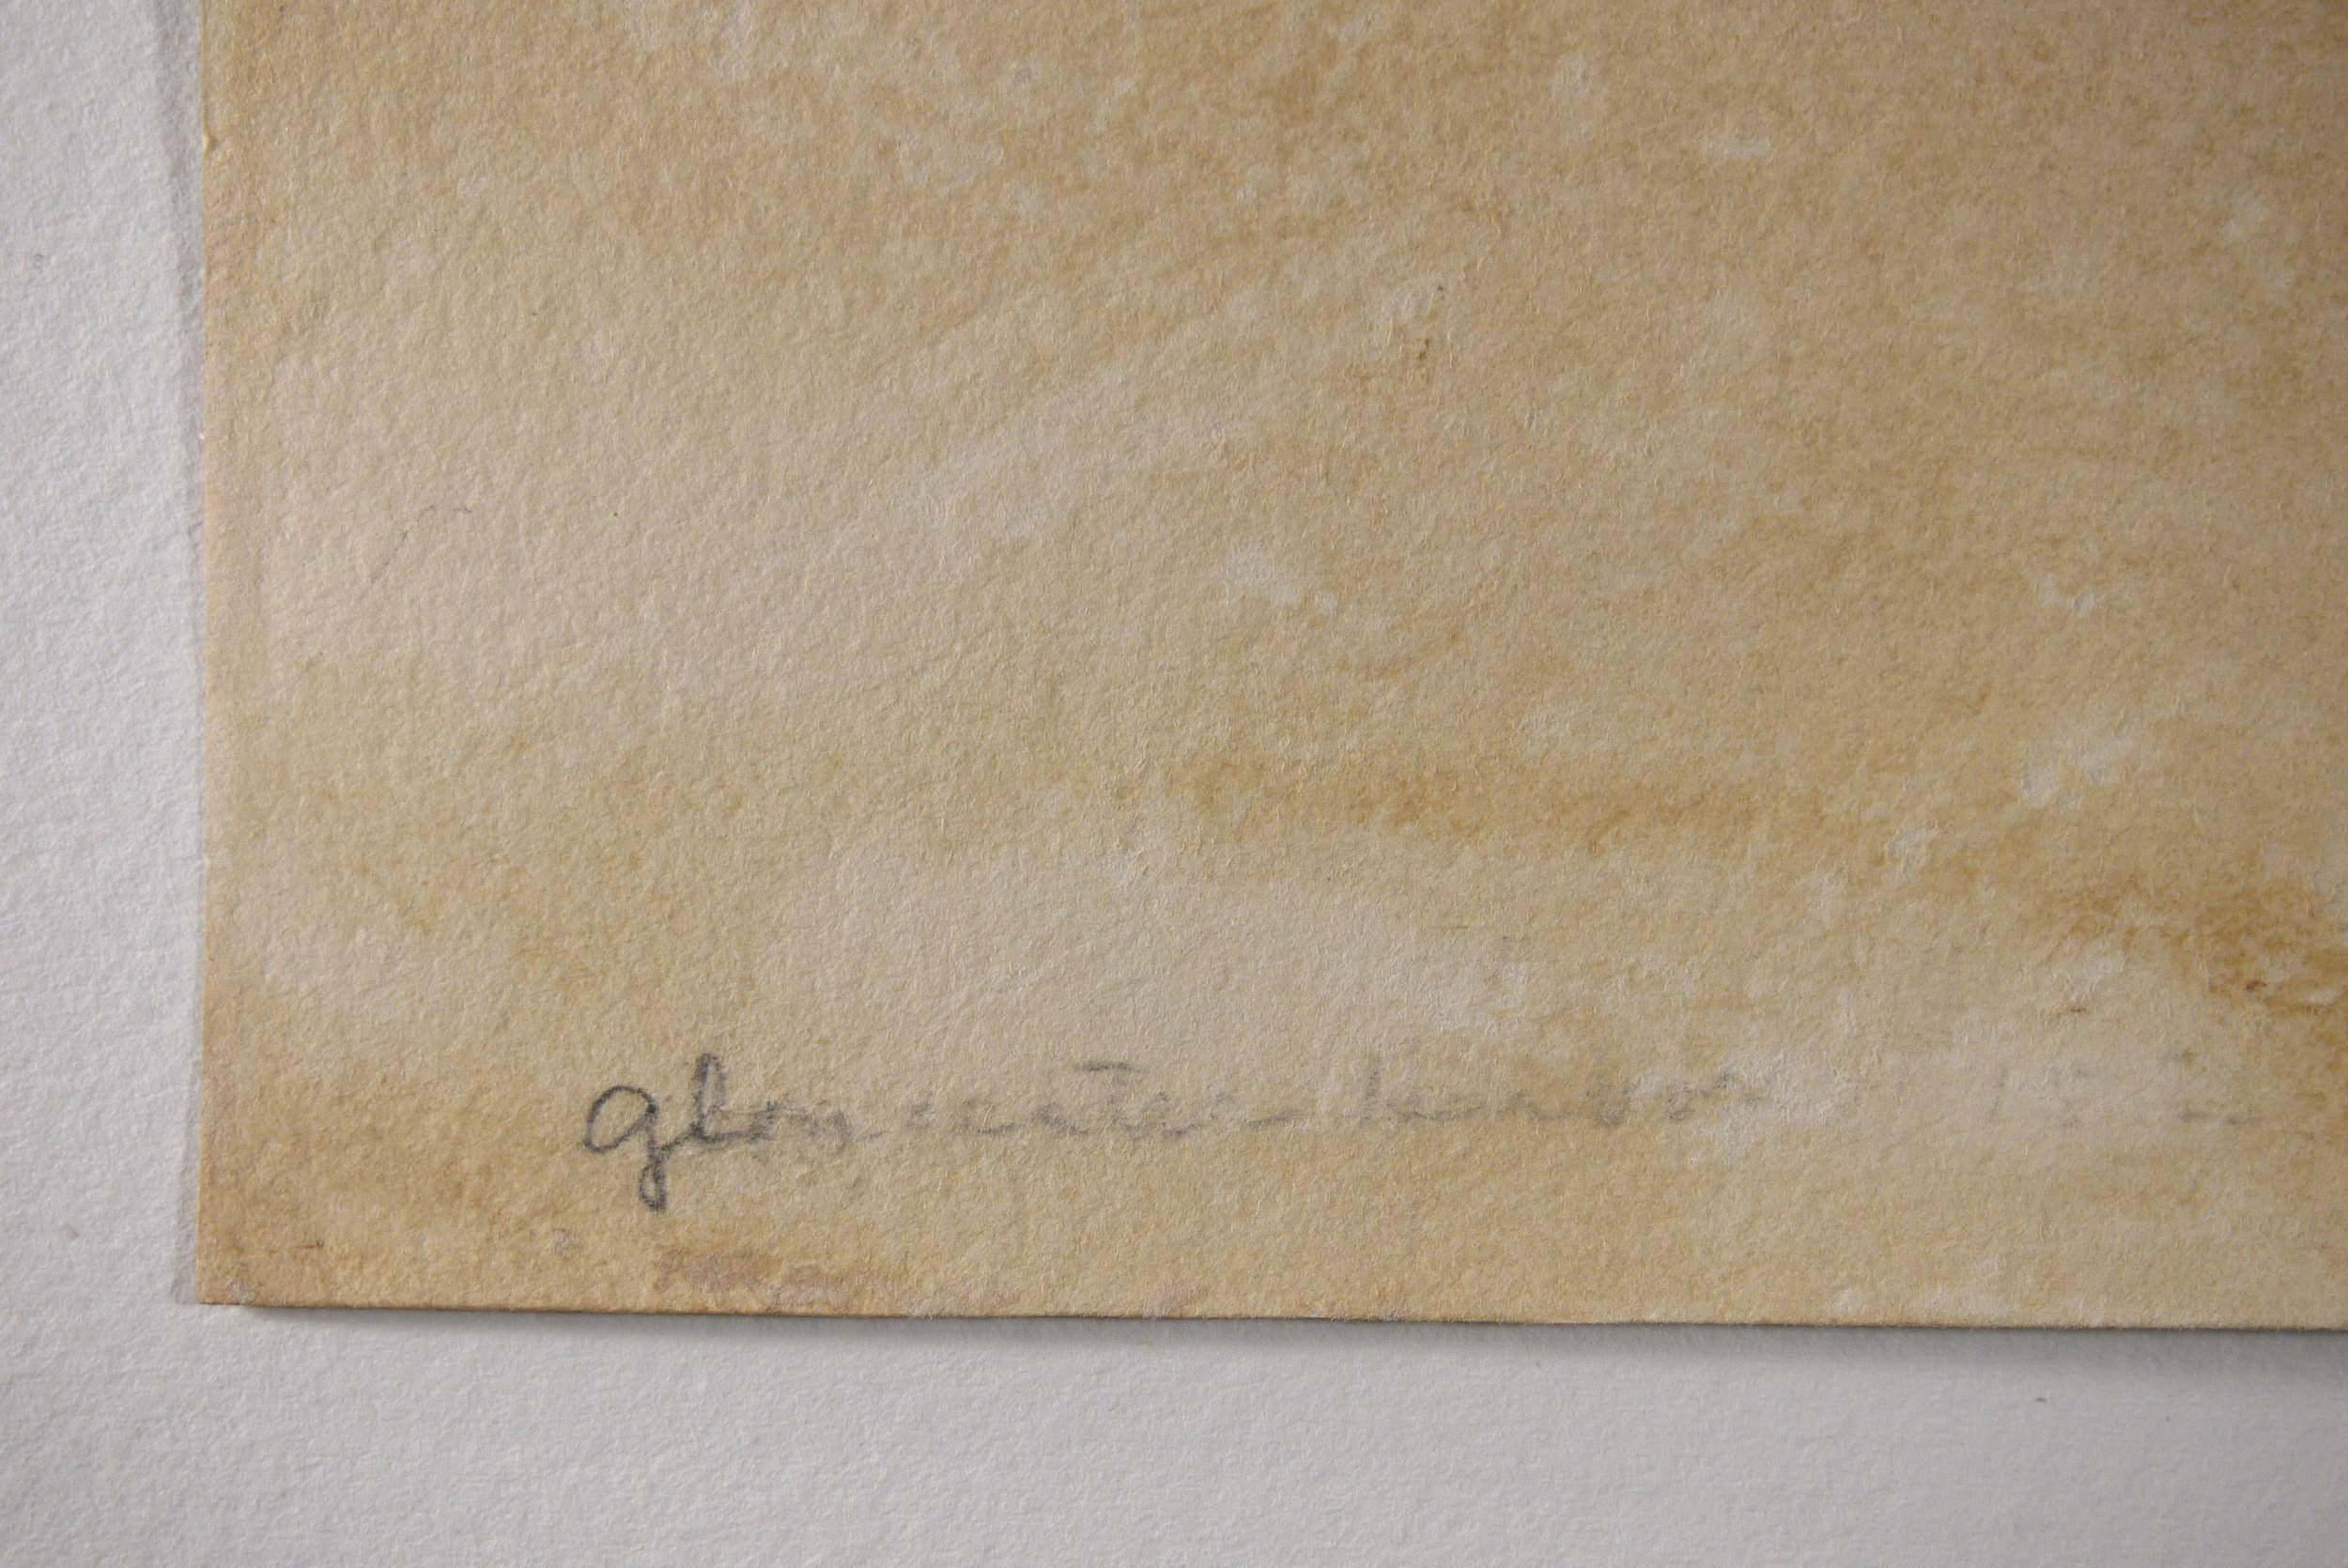 The title of the painting,  Gloucester Harbour , revealed on the verso.